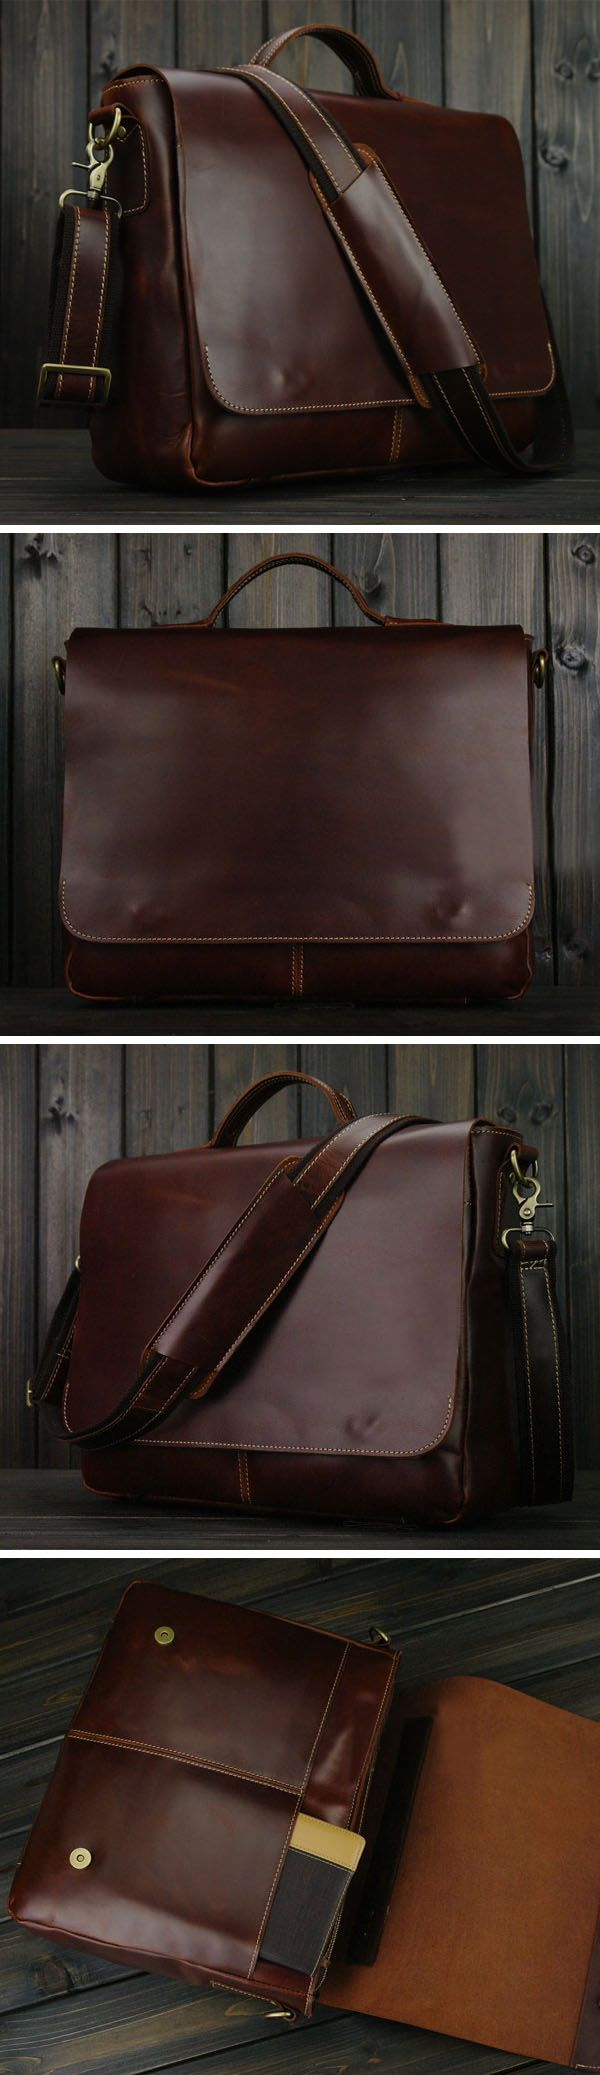 "Handmade Genuine Leather Briefcase Messenger Bag 13"" 14"" 15"" Laptop 13"" 15"" MacBook Bag red wine"